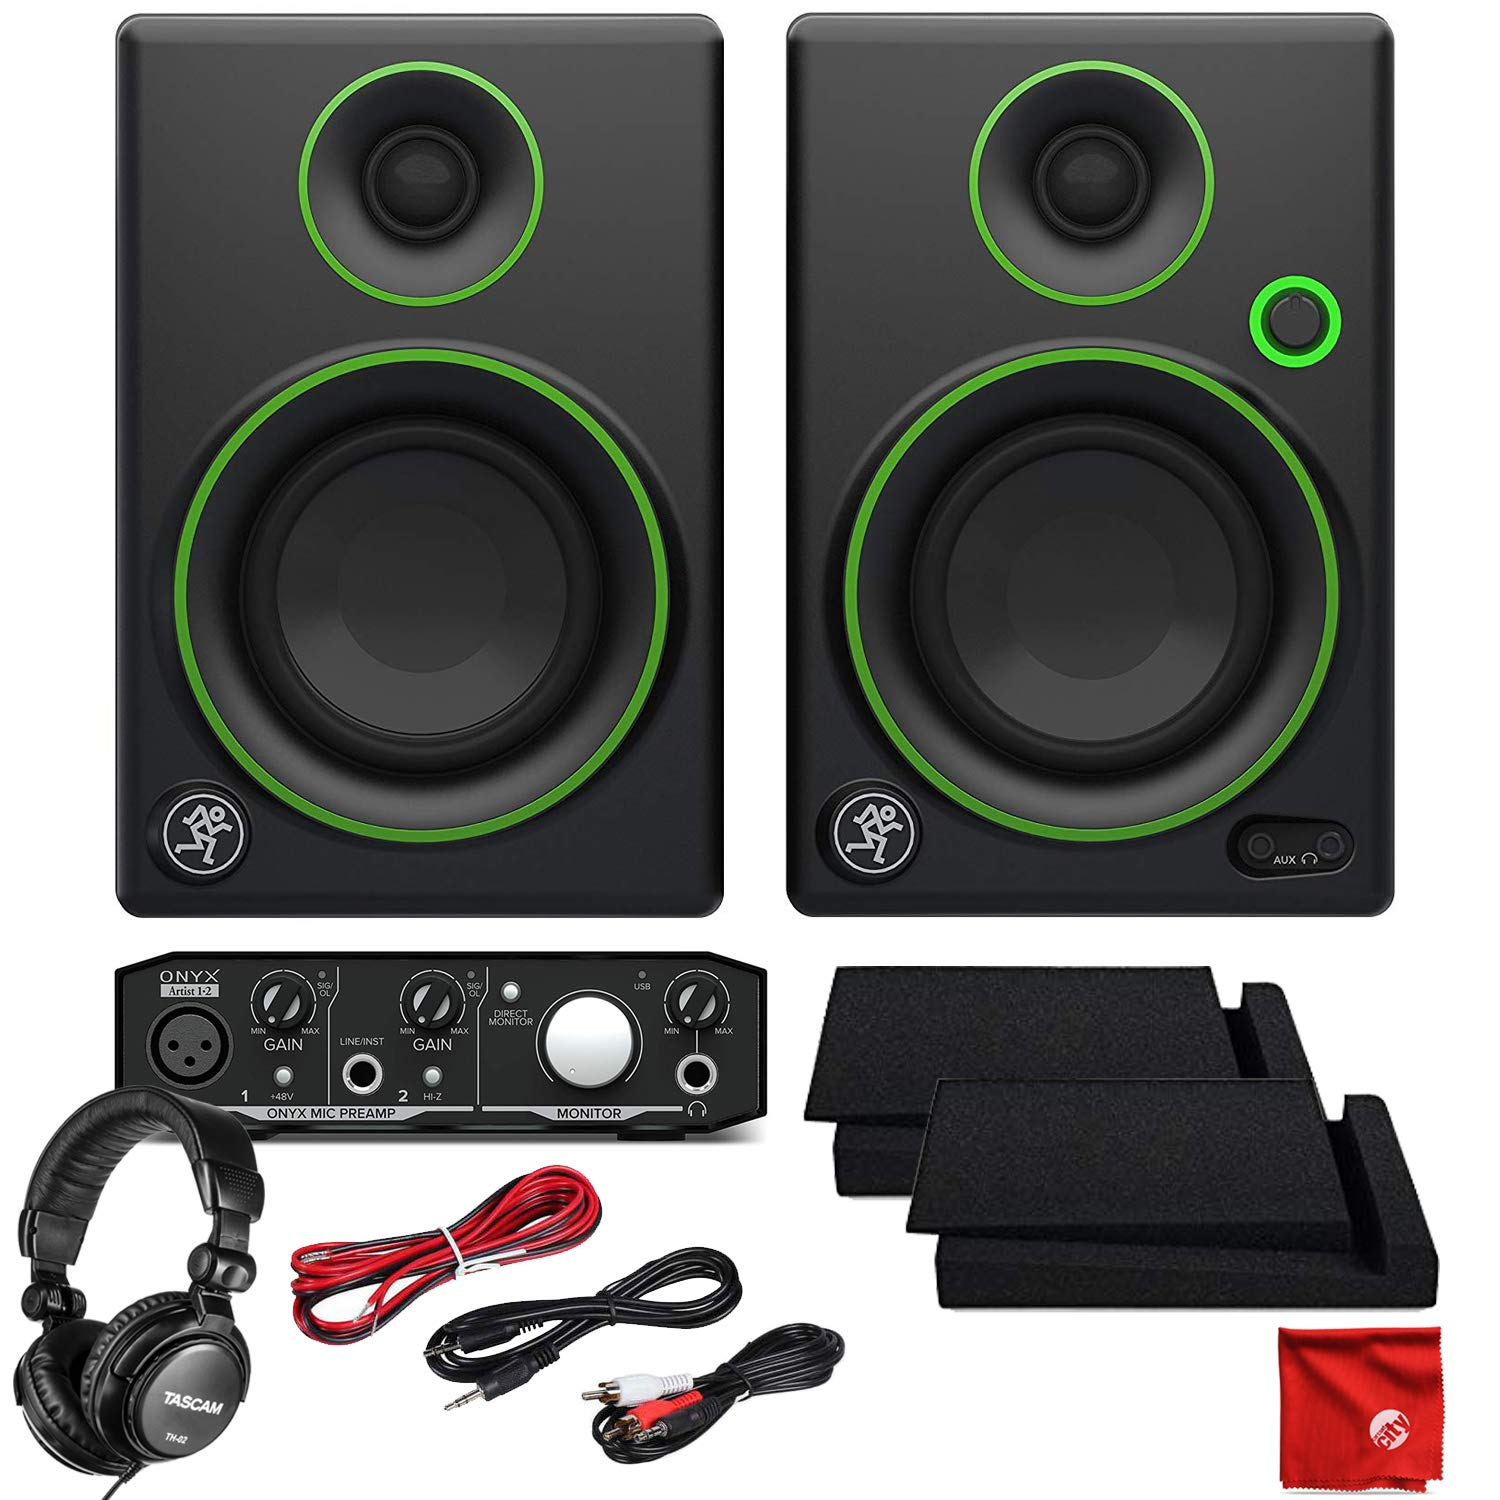 Mackie CR3 3'' Creative Reference Multimedia Monitors Bundle with Mackie Onyx Artist 1-2 USB Audio Interface and Tascam TH-02 Closed Back Studio Headphones